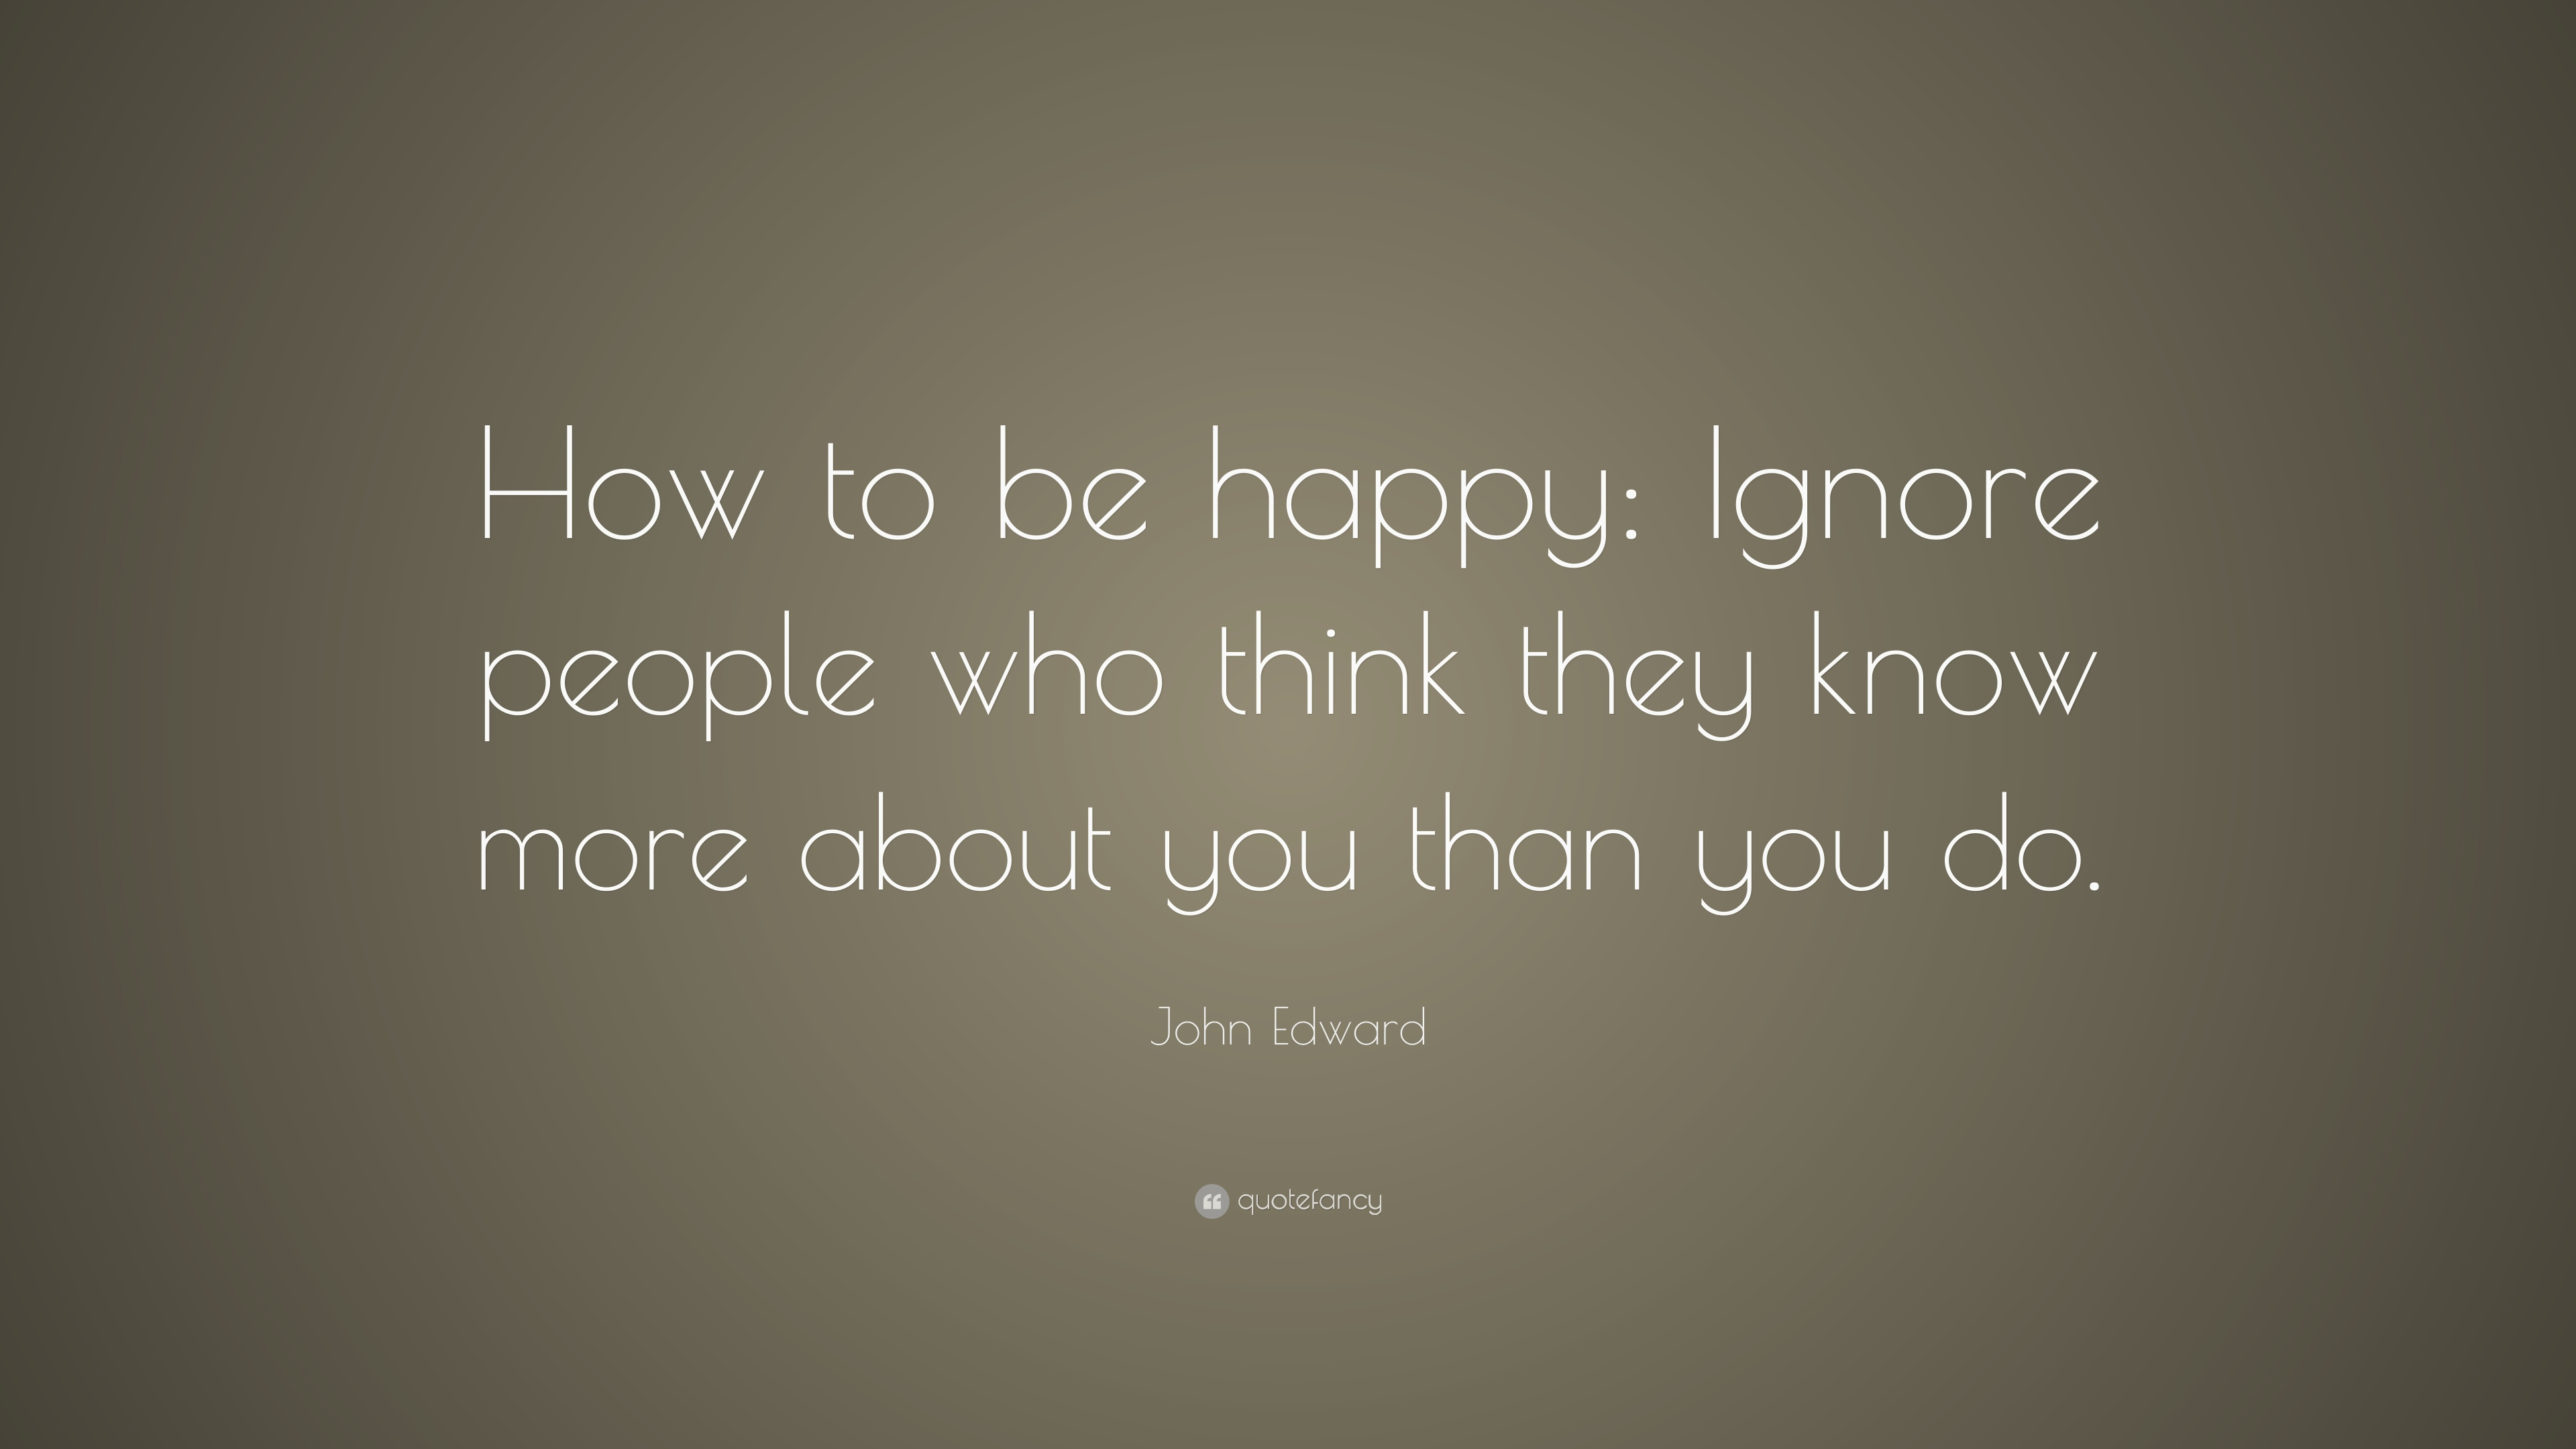 """Ignore People Quotes John Edward Quote: """"How to be happy: Ignore people who think they  Ignore People Quotes"""